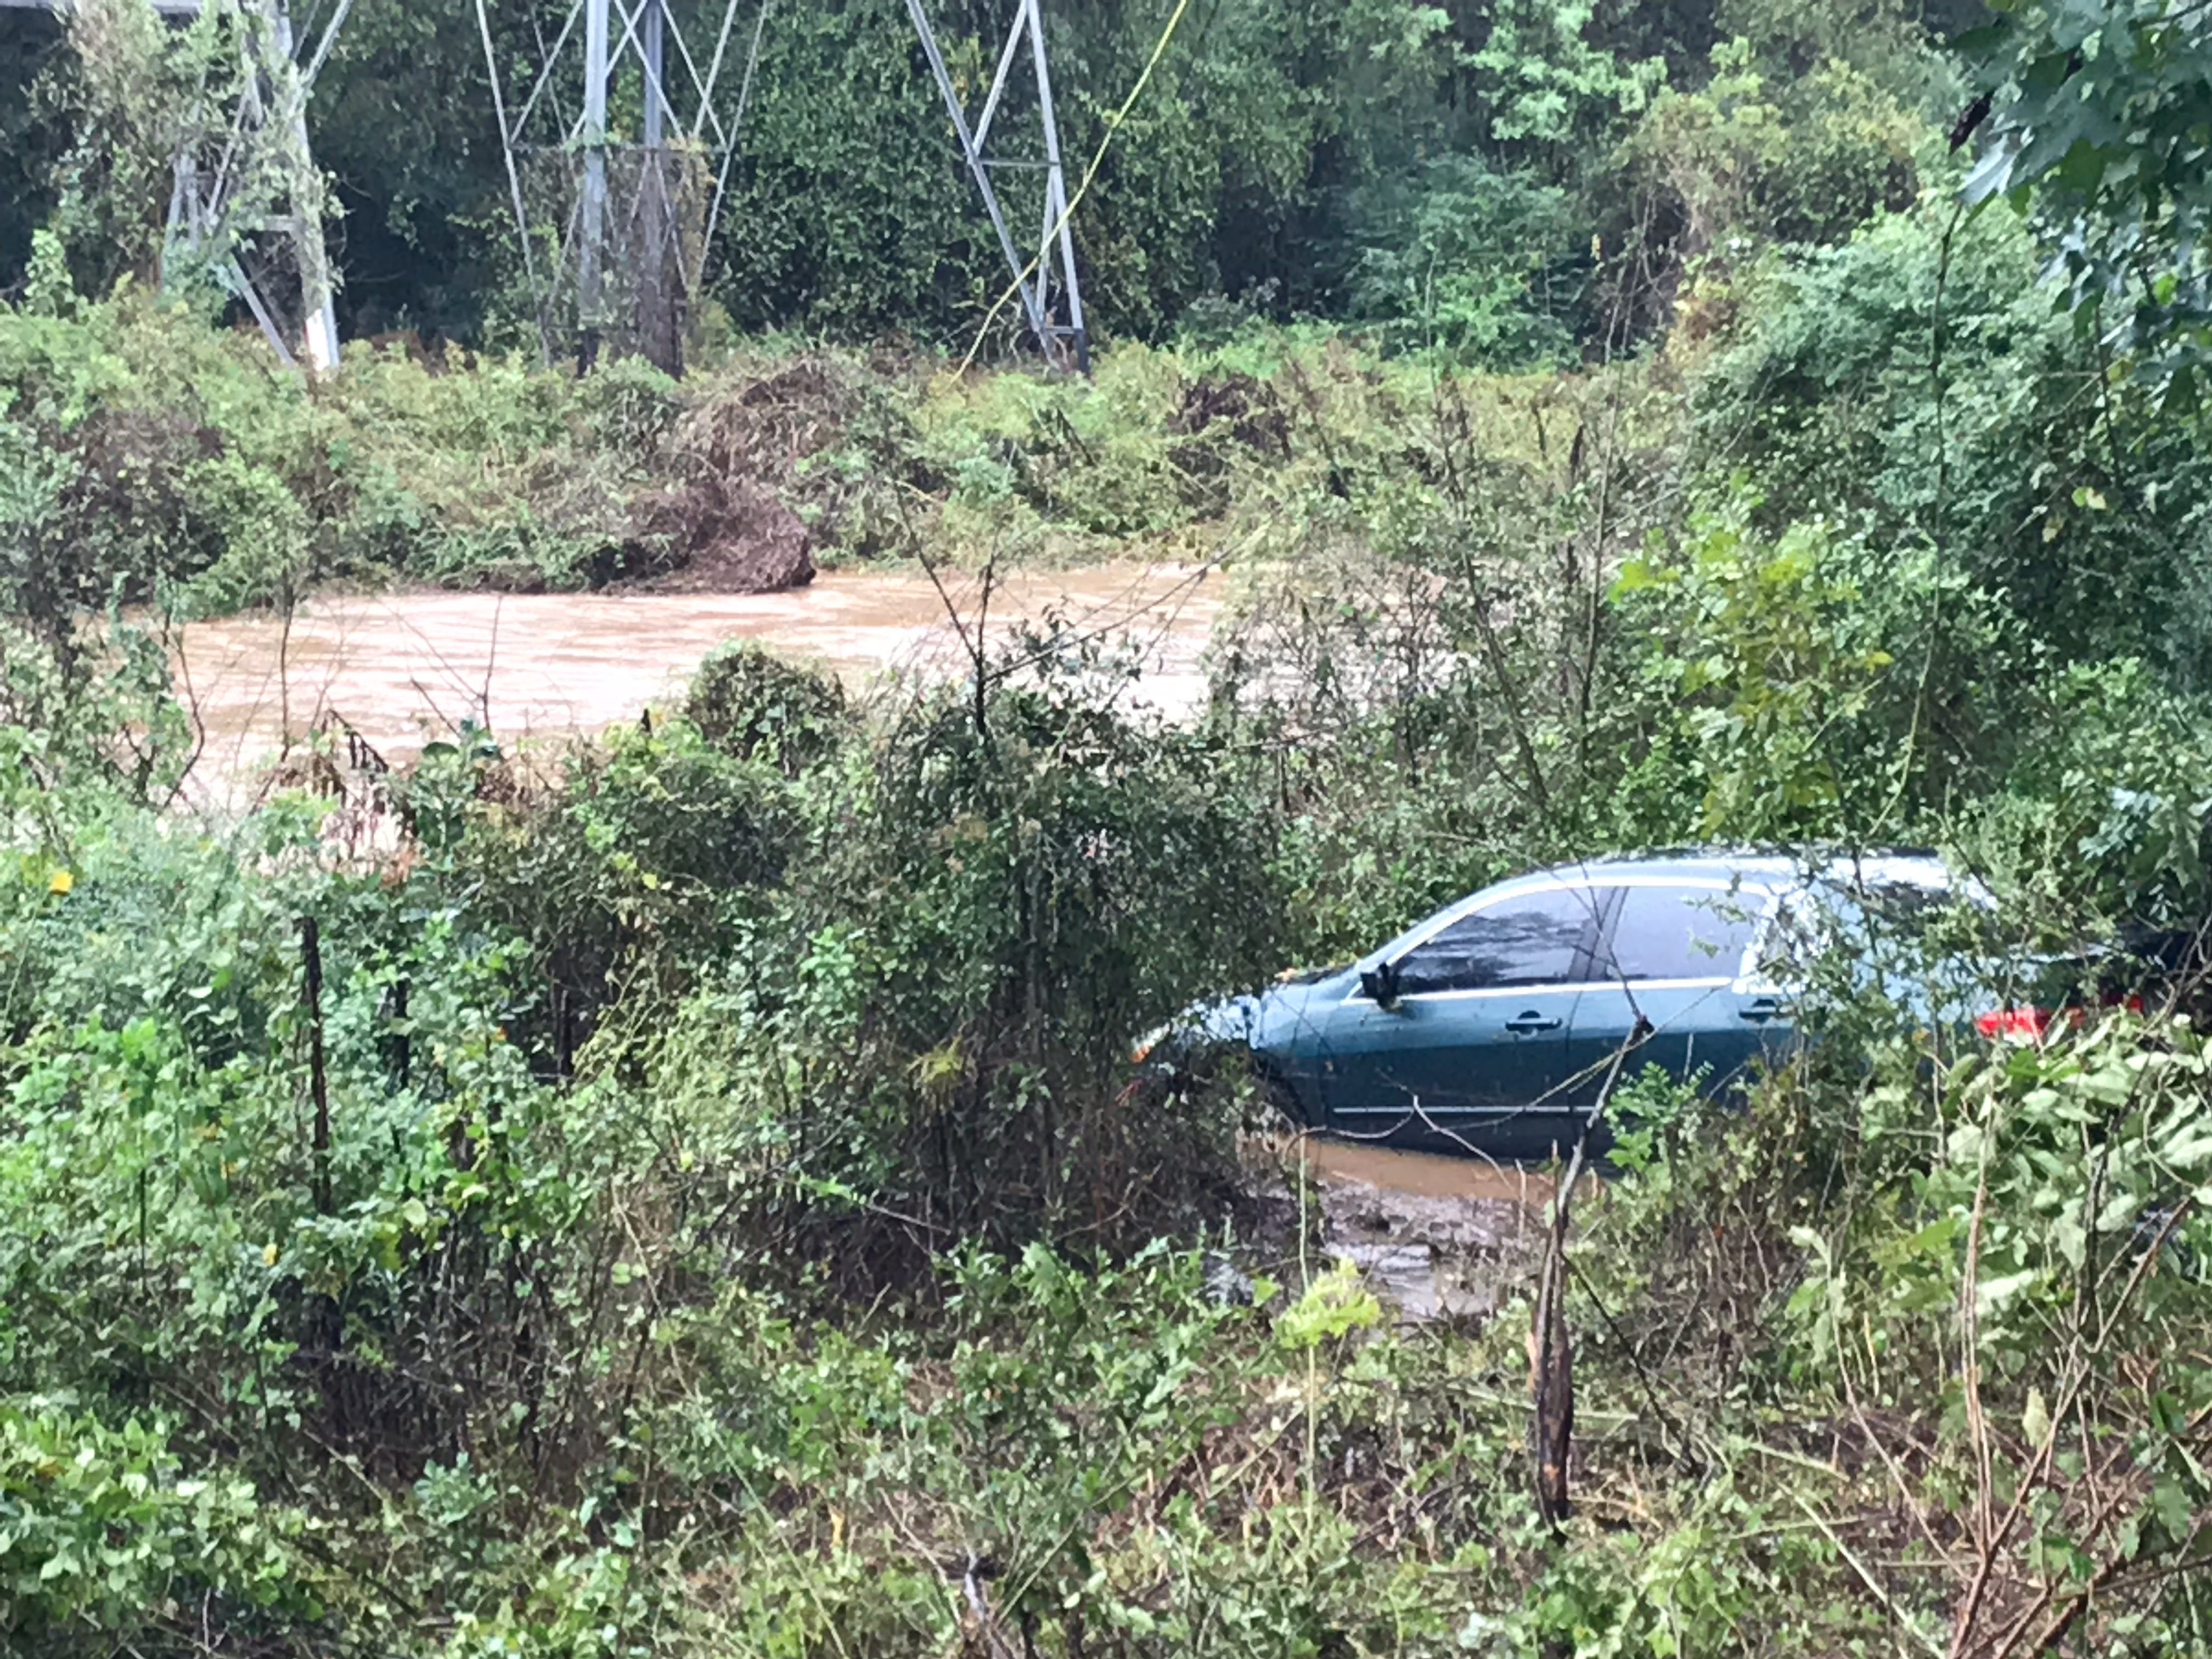 An unoccupied car is partially submerged off Parkins Mill Road  in Greenville on Thursday, Oct. 11, 2018.